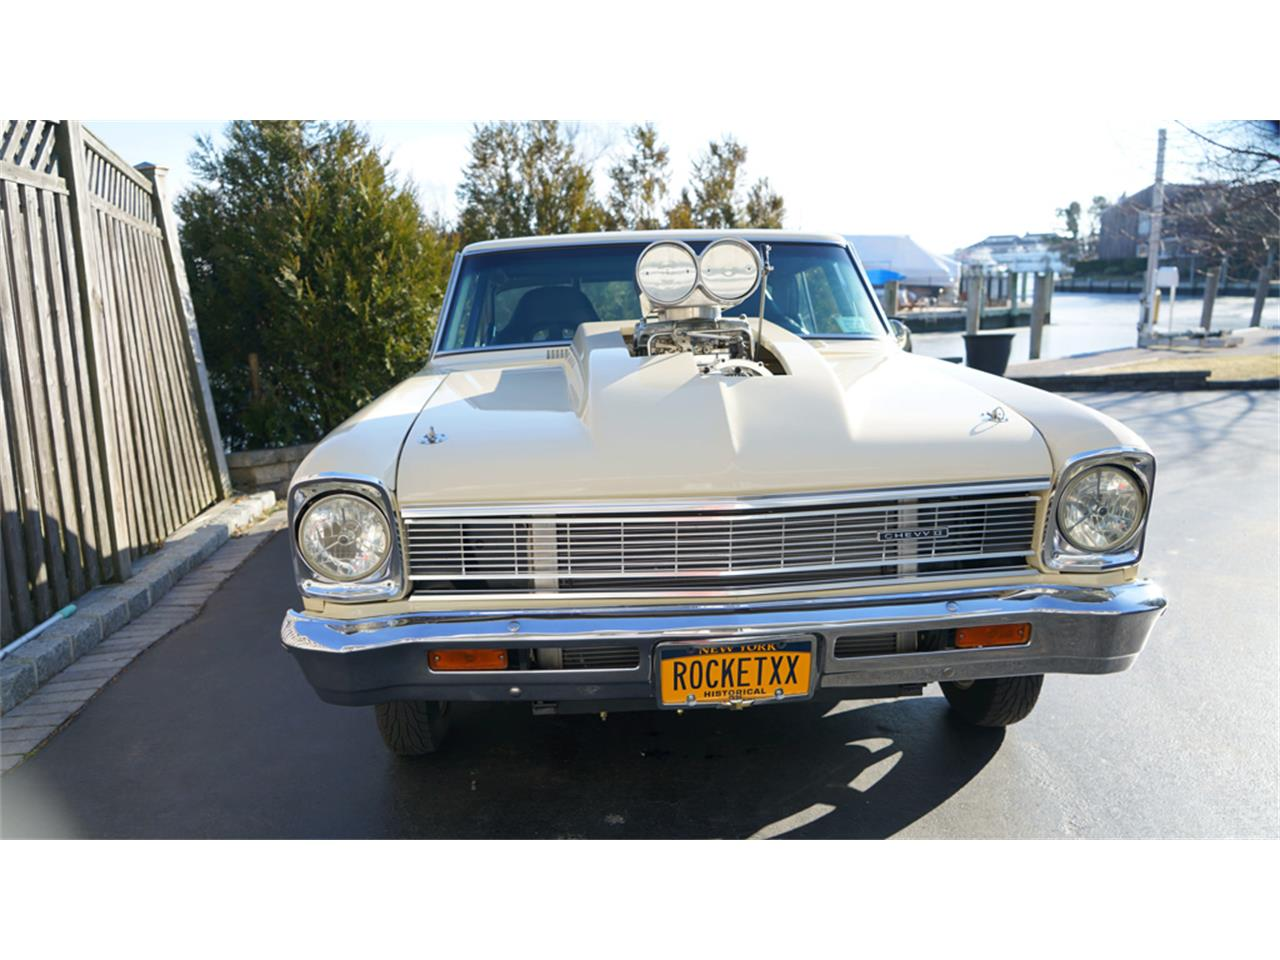 Large Picture of Classic 1966 Chevy II Nova located in New York - $57,900.00 Offered by Fiore Motor Classics - PH1L